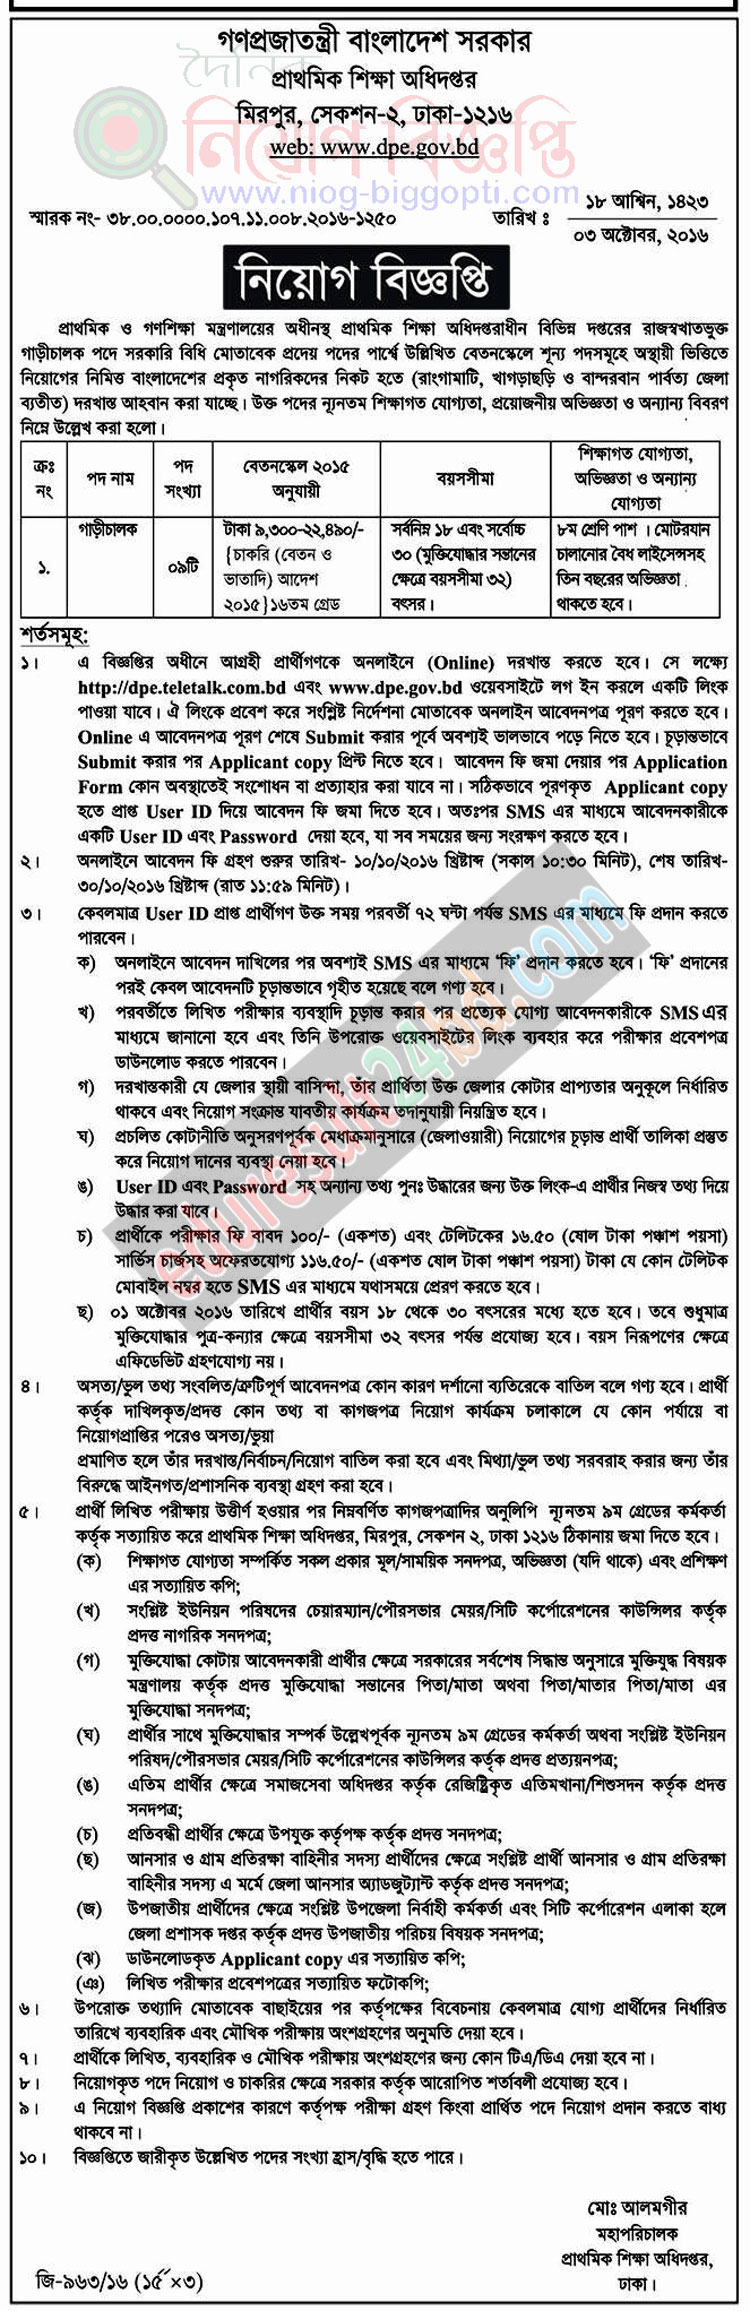 Primary Mass Education Job Circular 2016